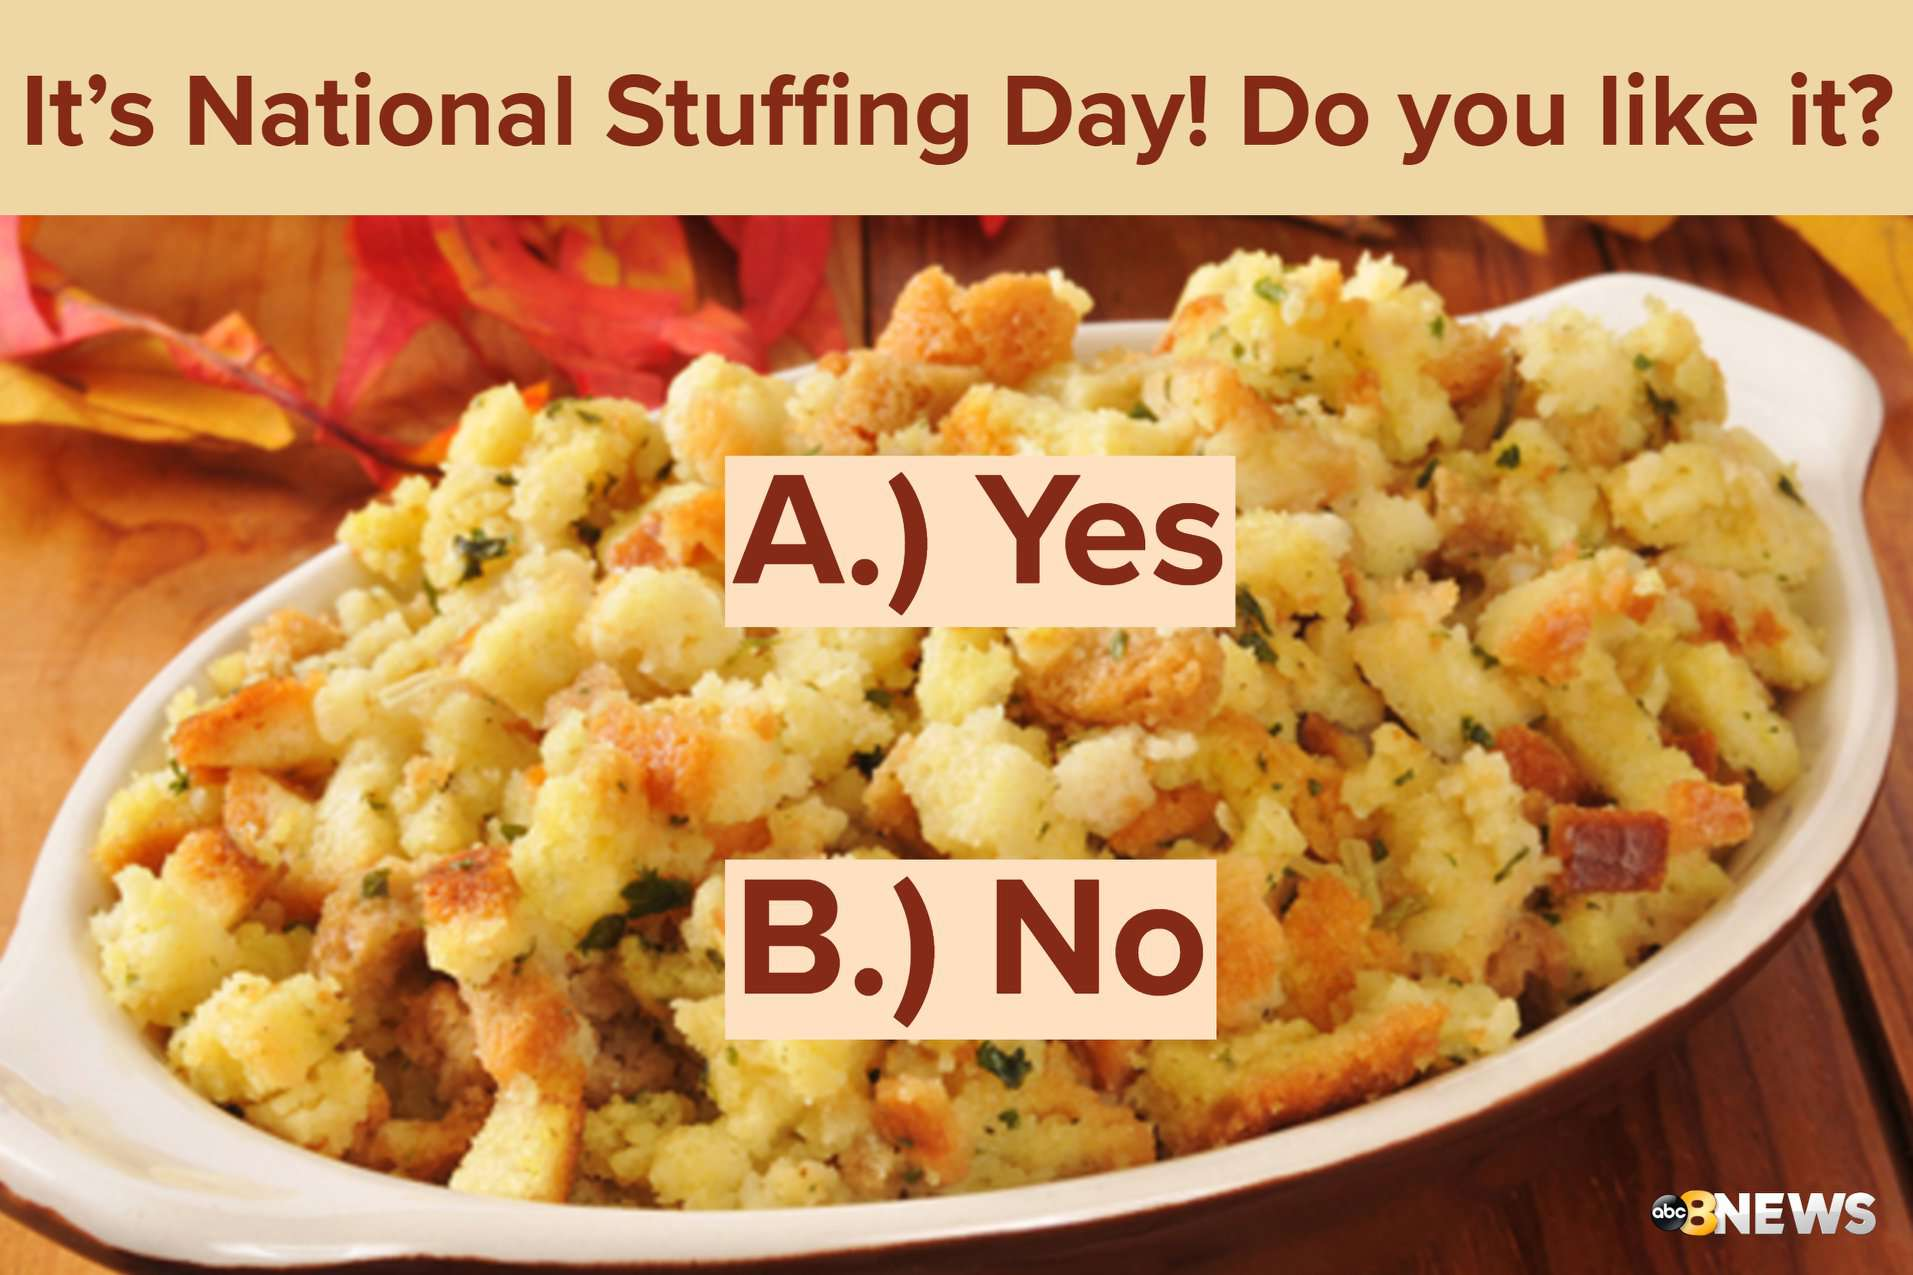 National Stuffing Day Wishes For Facebook